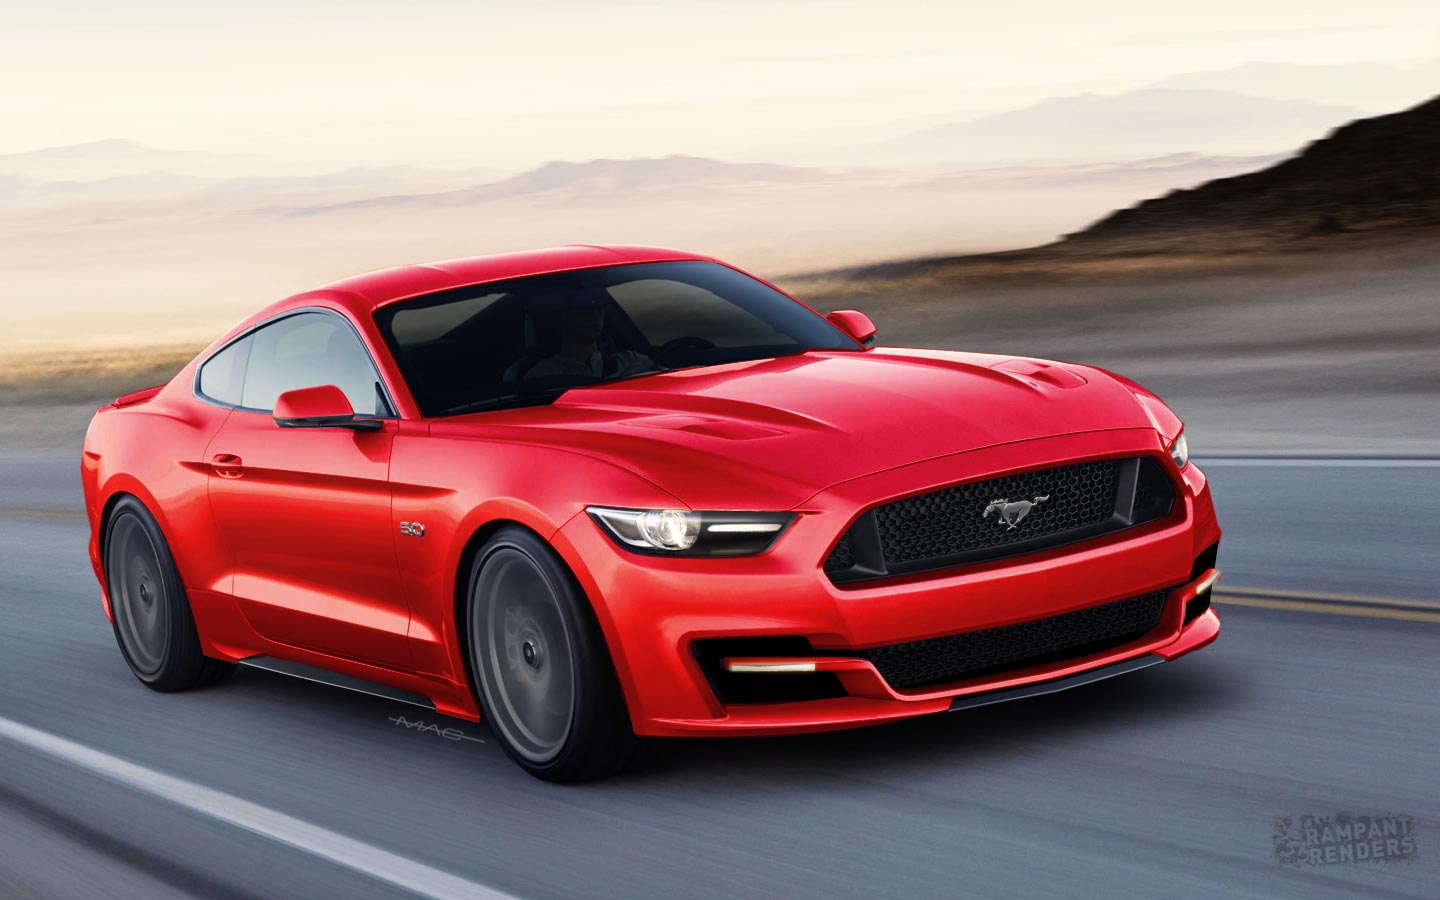 2015 Ford Mustang renderings - photo gallery